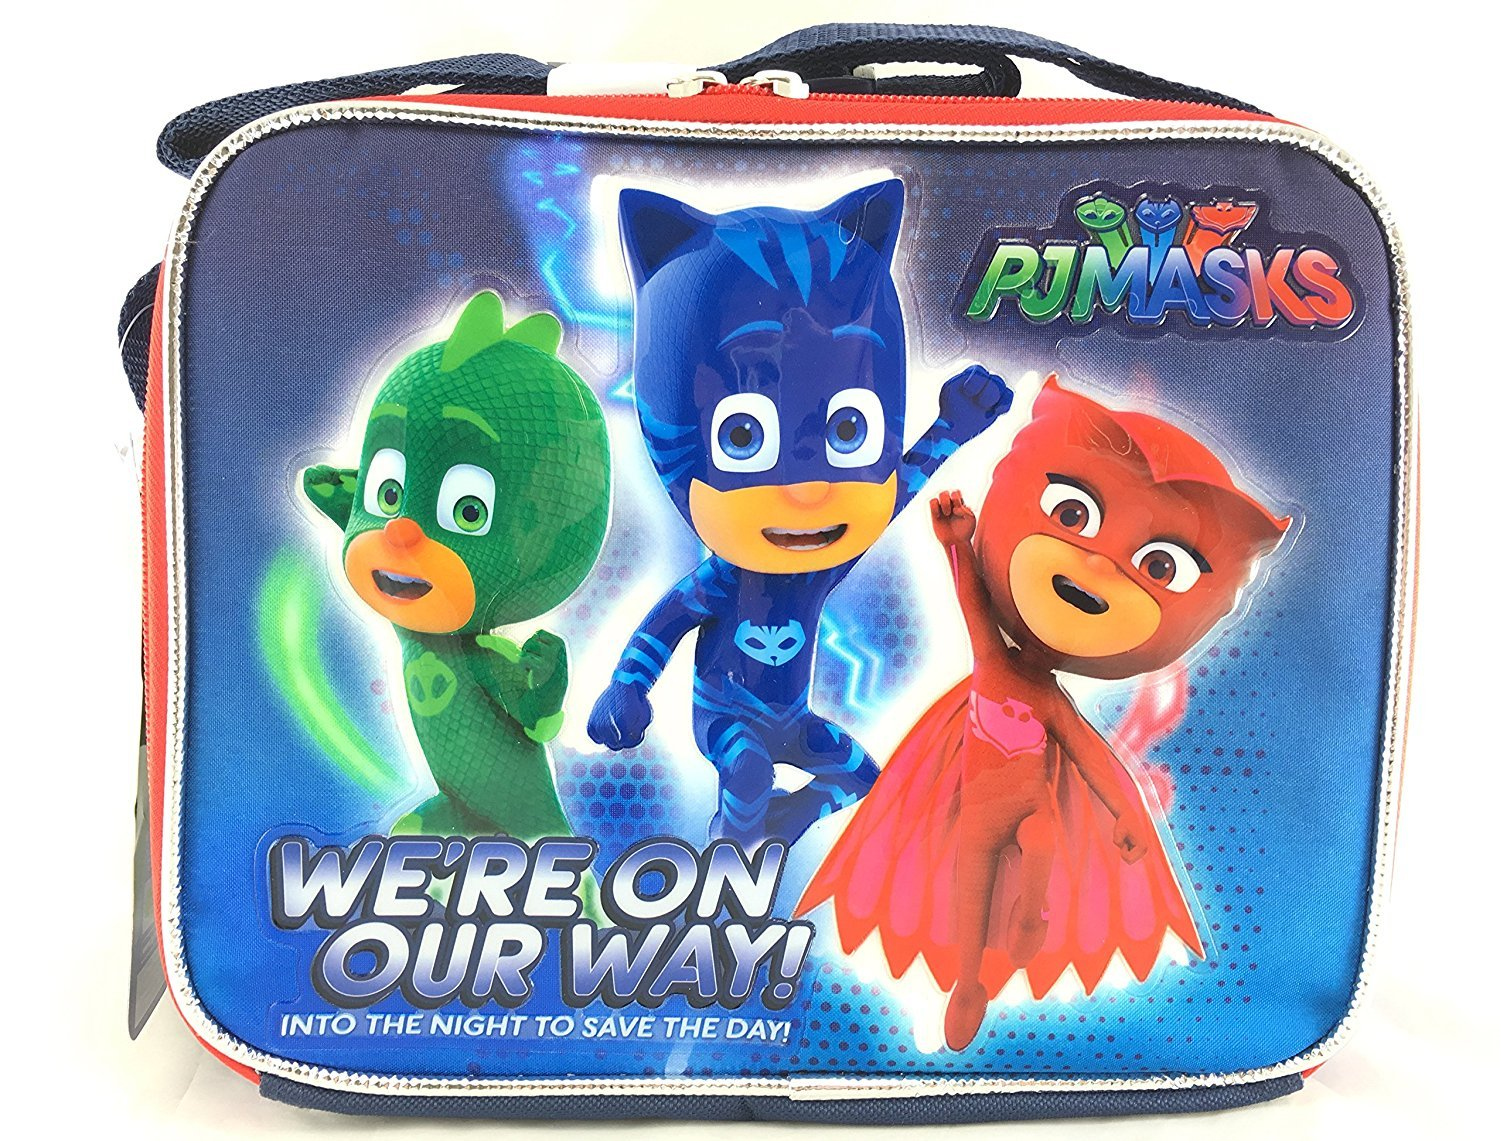 Disney Junior Pj Masks We're on our ways! Lunch Bag Accessory Innovations